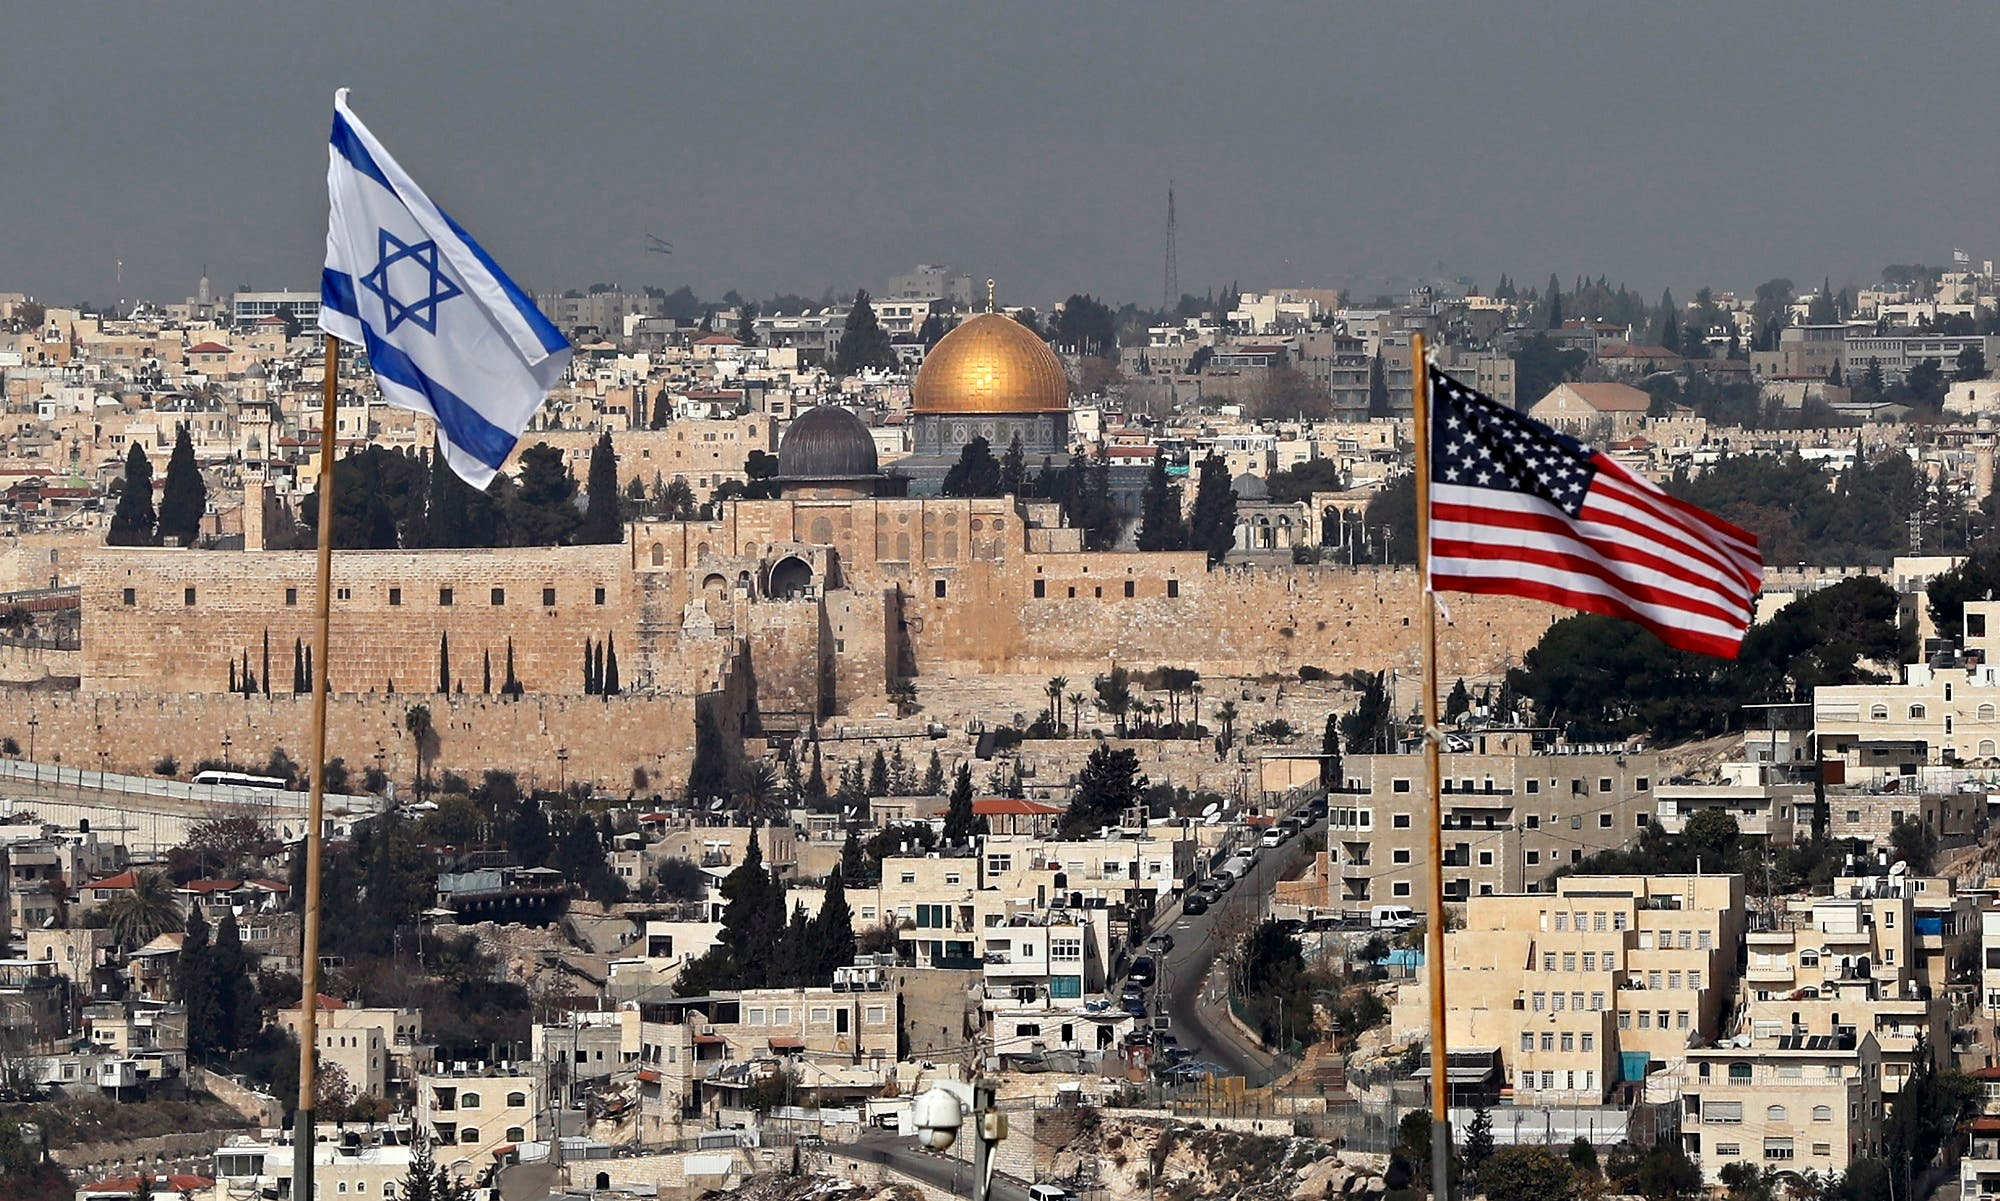 Israeli and US flags placed on the roof of an Israeli settlement building in East Jerusalem on December 13, 2017. (AFP)